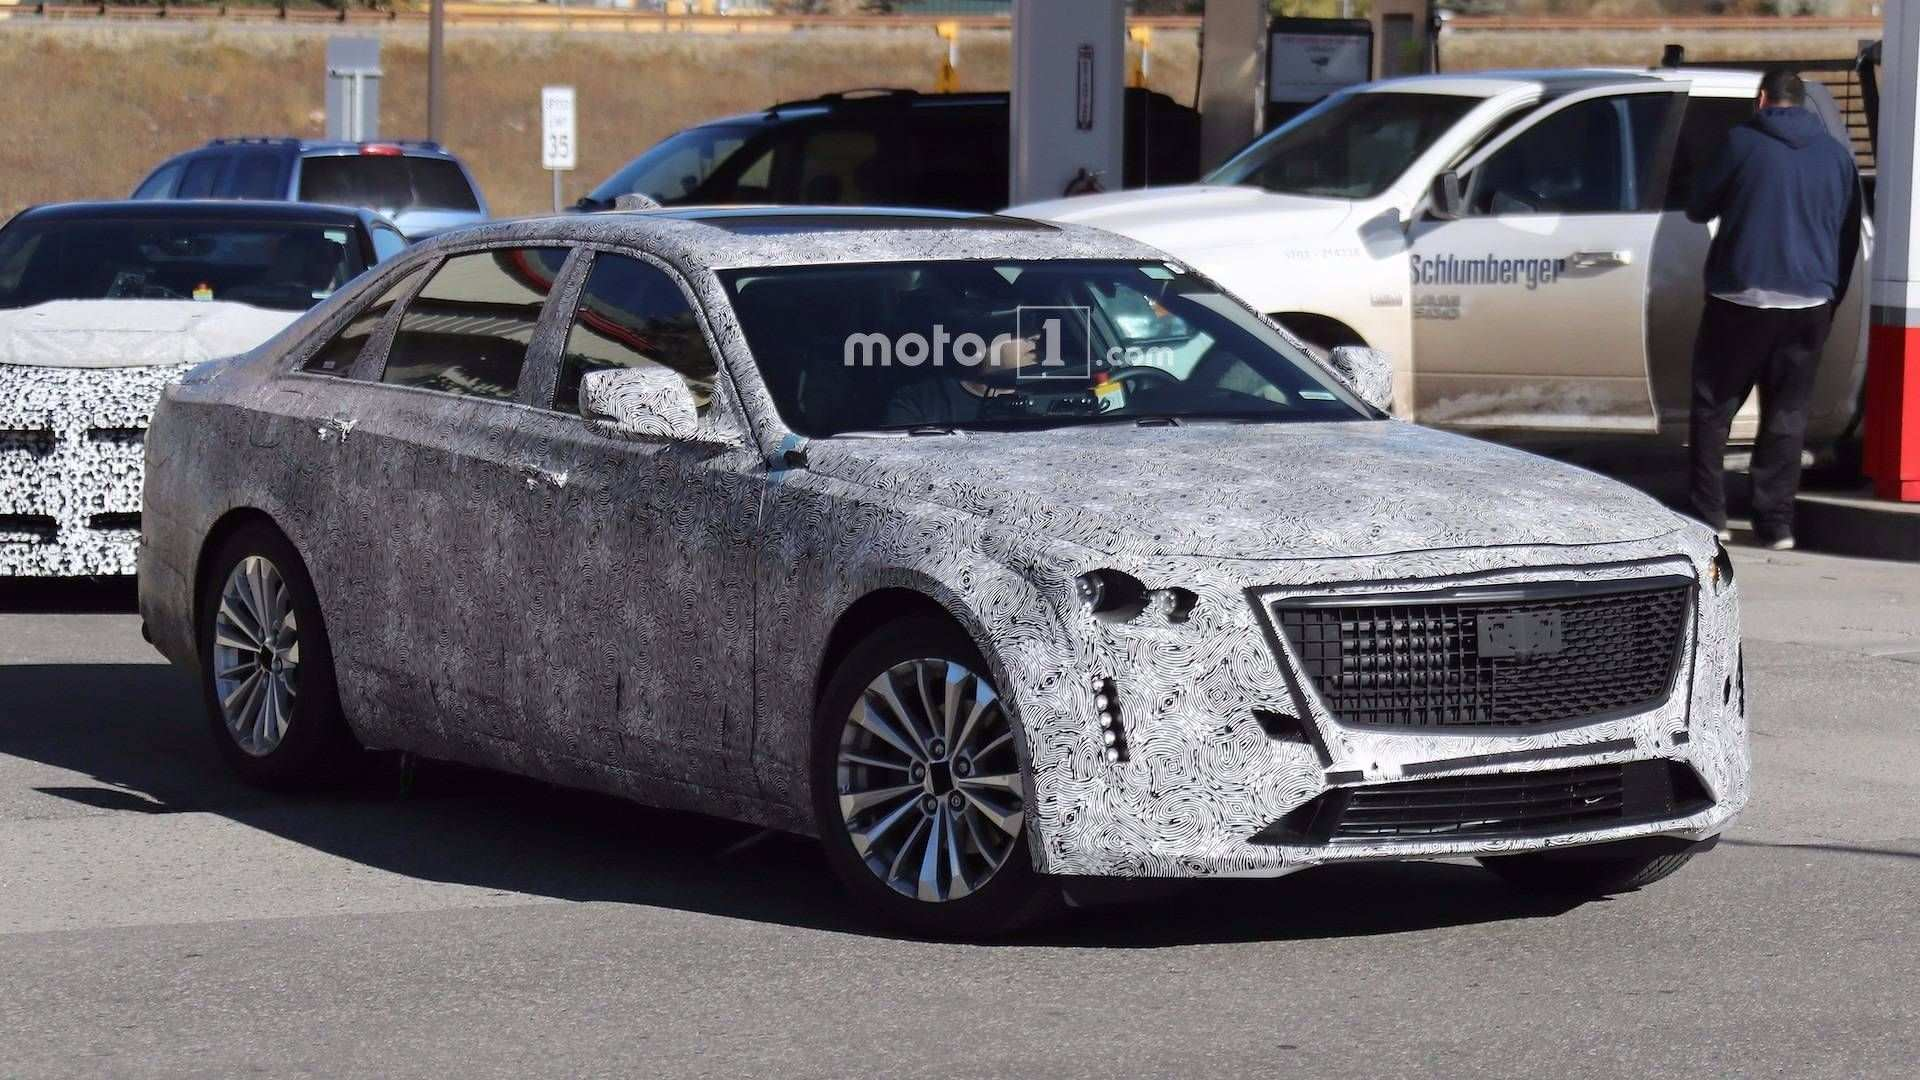 28 Great Best New Cadillac 2019 Models Release Date And Specs Exterior and Interior by Best New Cadillac 2019 Models Release Date And Specs